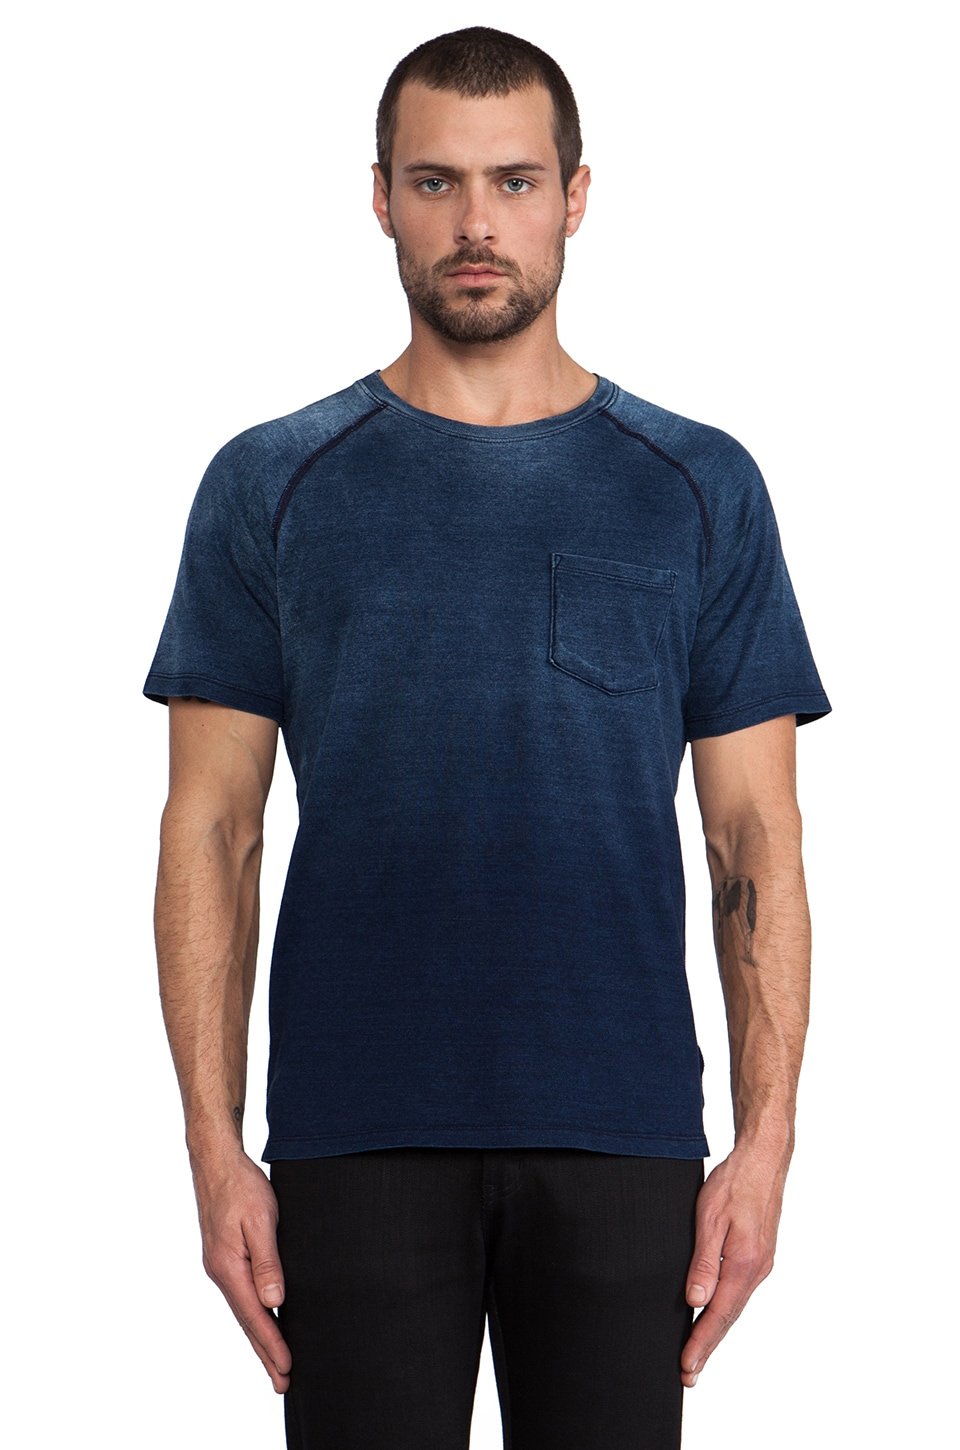 AG Adriano Goldschmied Saddle Shoulder Pocket Tee in Vintage Indigo